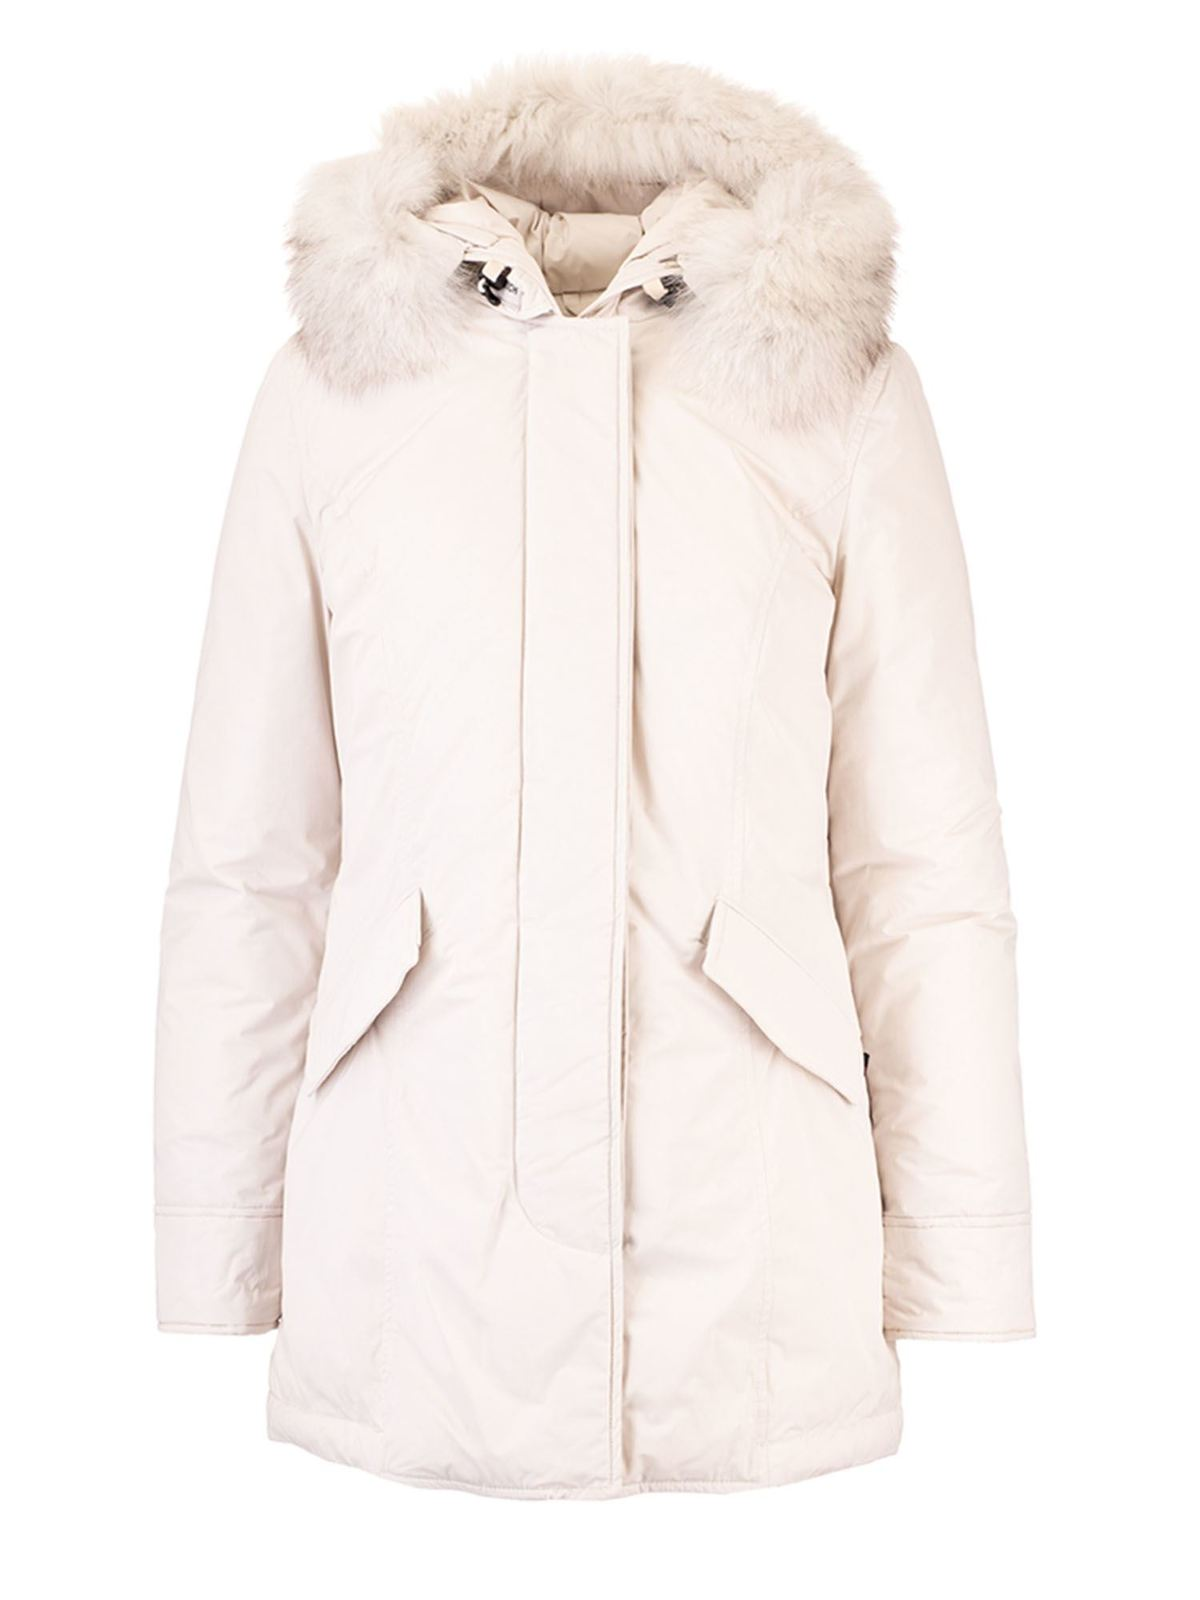 Woolrich PADDED LUXURY ARCTIC PARKA IN WHITE